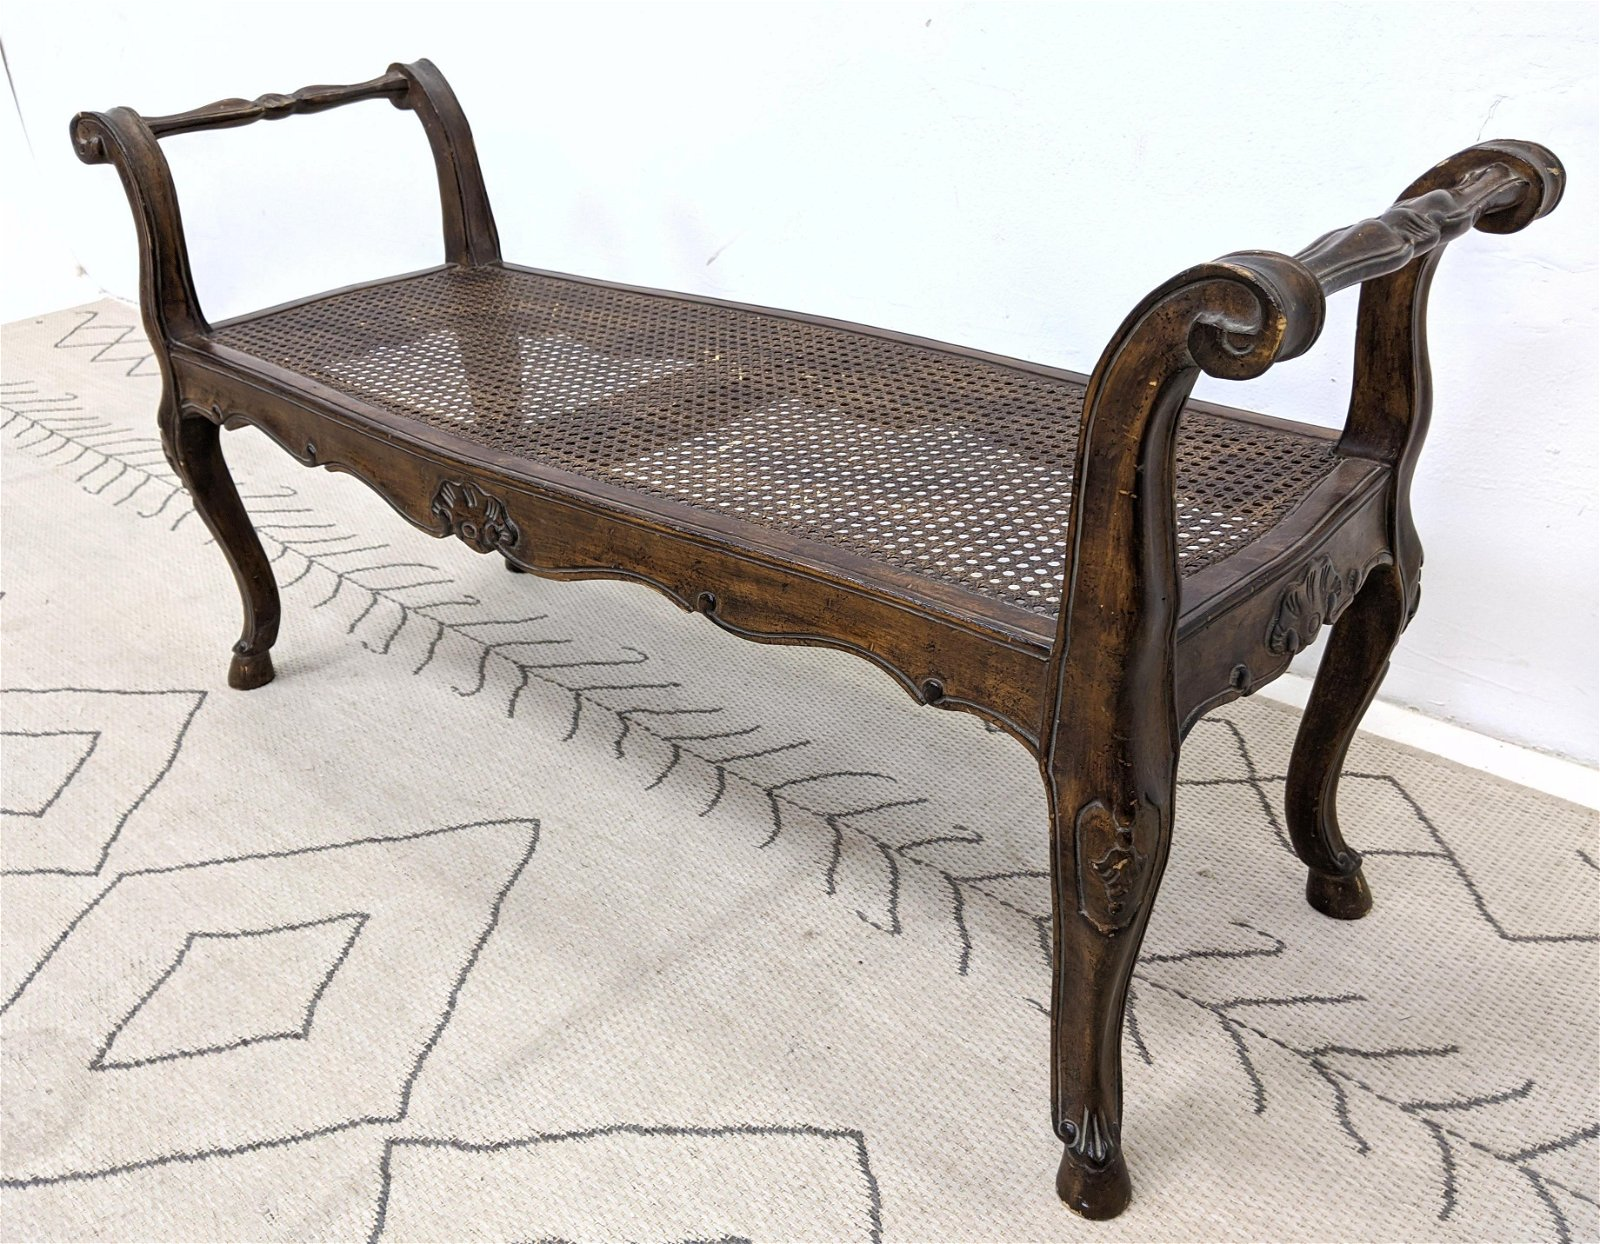 French Carved Wood Window Bench.  Cane seat Bench with